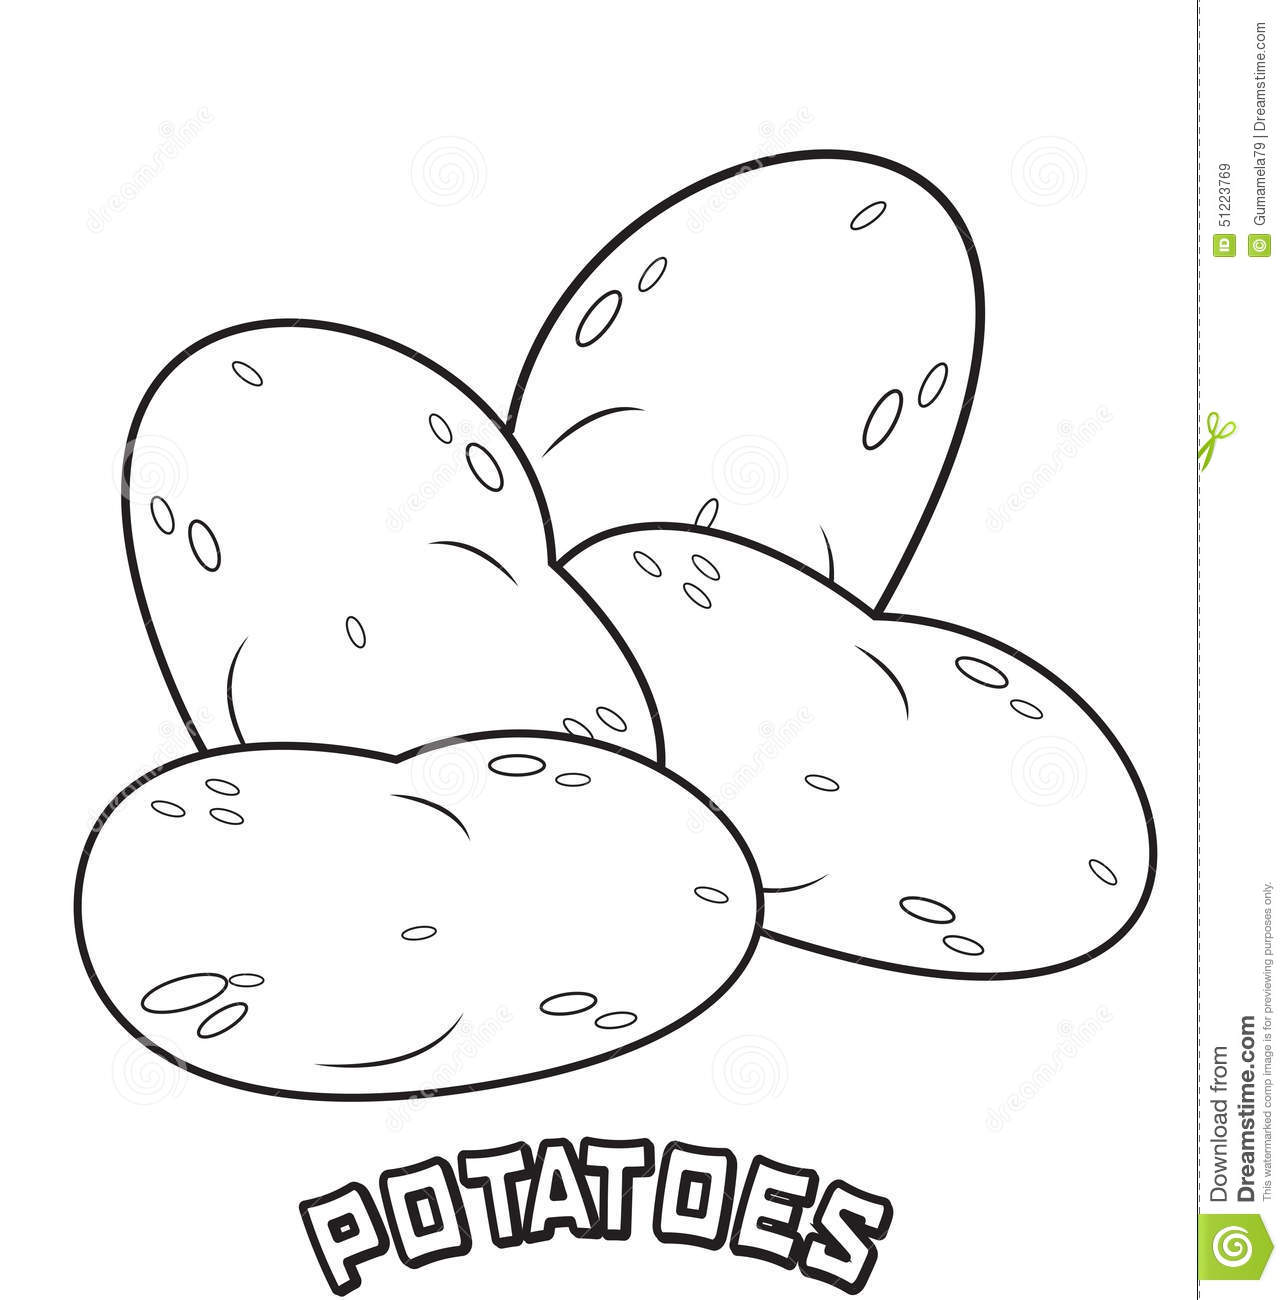 Potatoes coloring page stock illustration. Image of clip